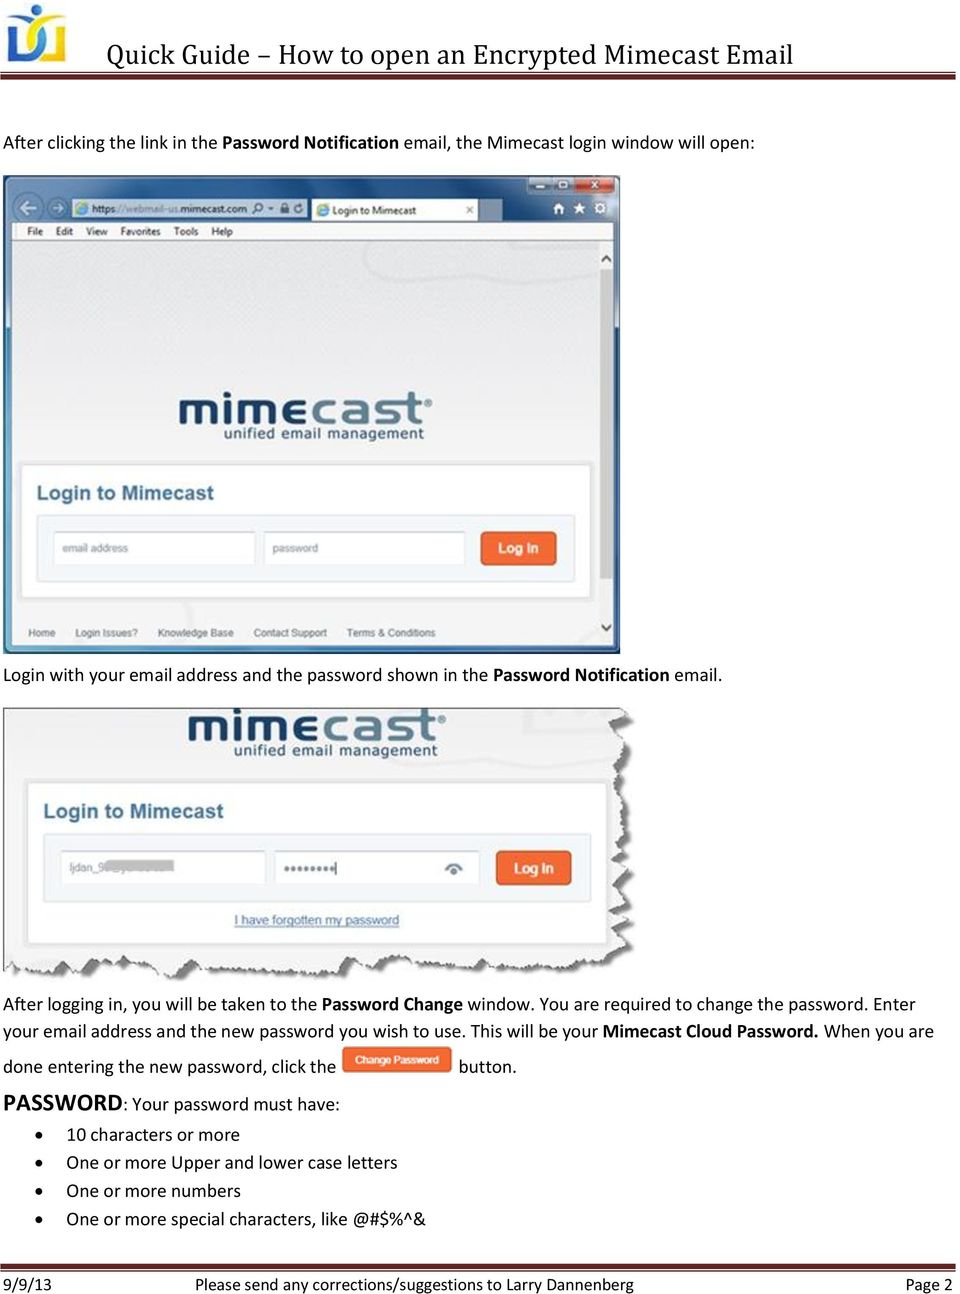 Enter your email address and the new password you wish to use. This will be your Mimecast Cloud Password. When you are done entering the new password, click the button.